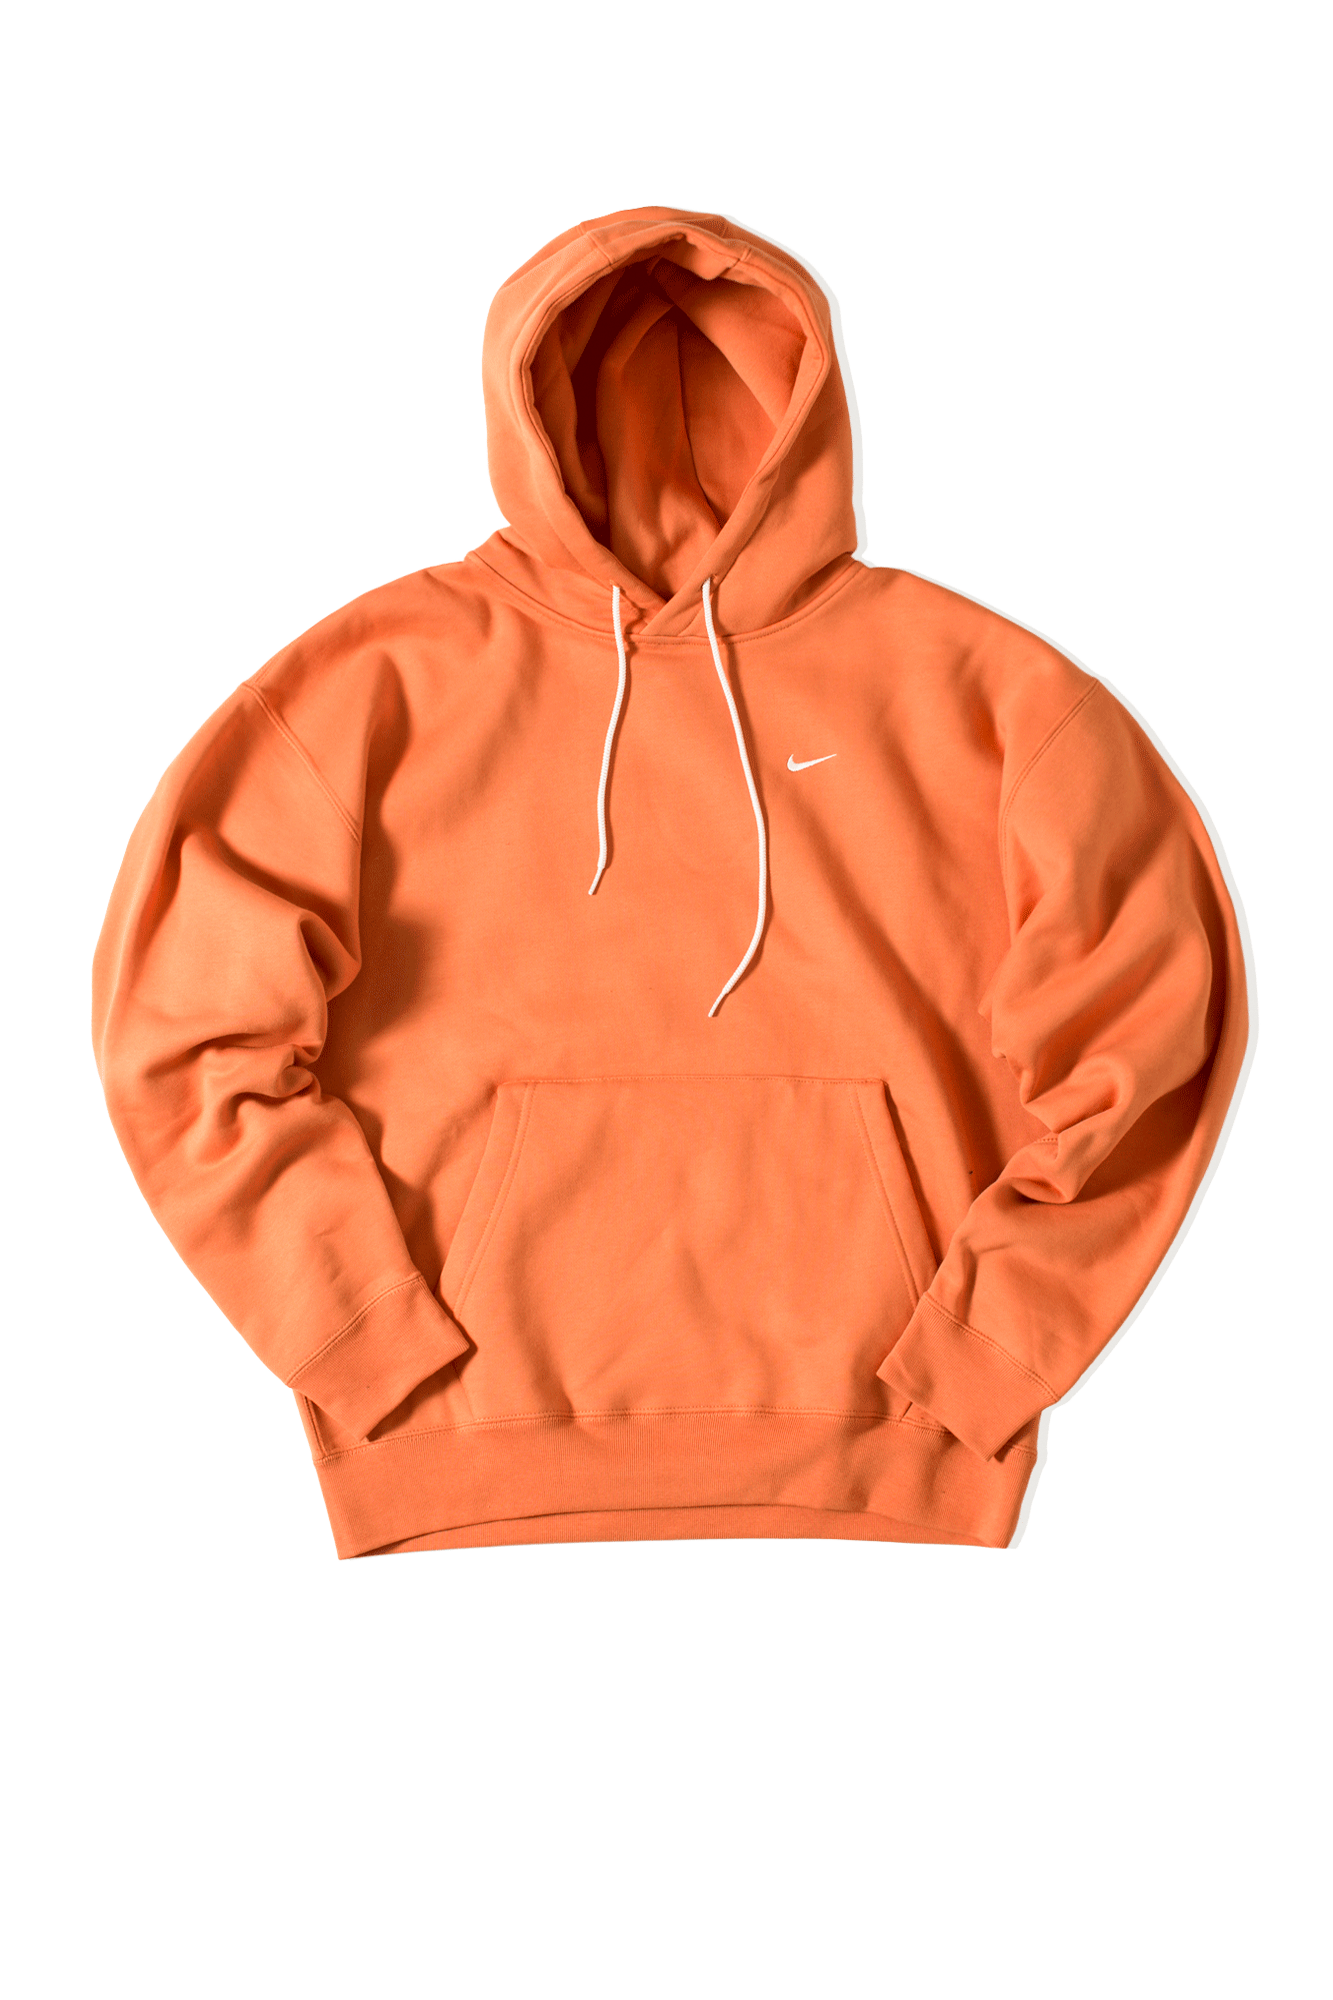 M Nrg Hooded Sweatshirt Orange